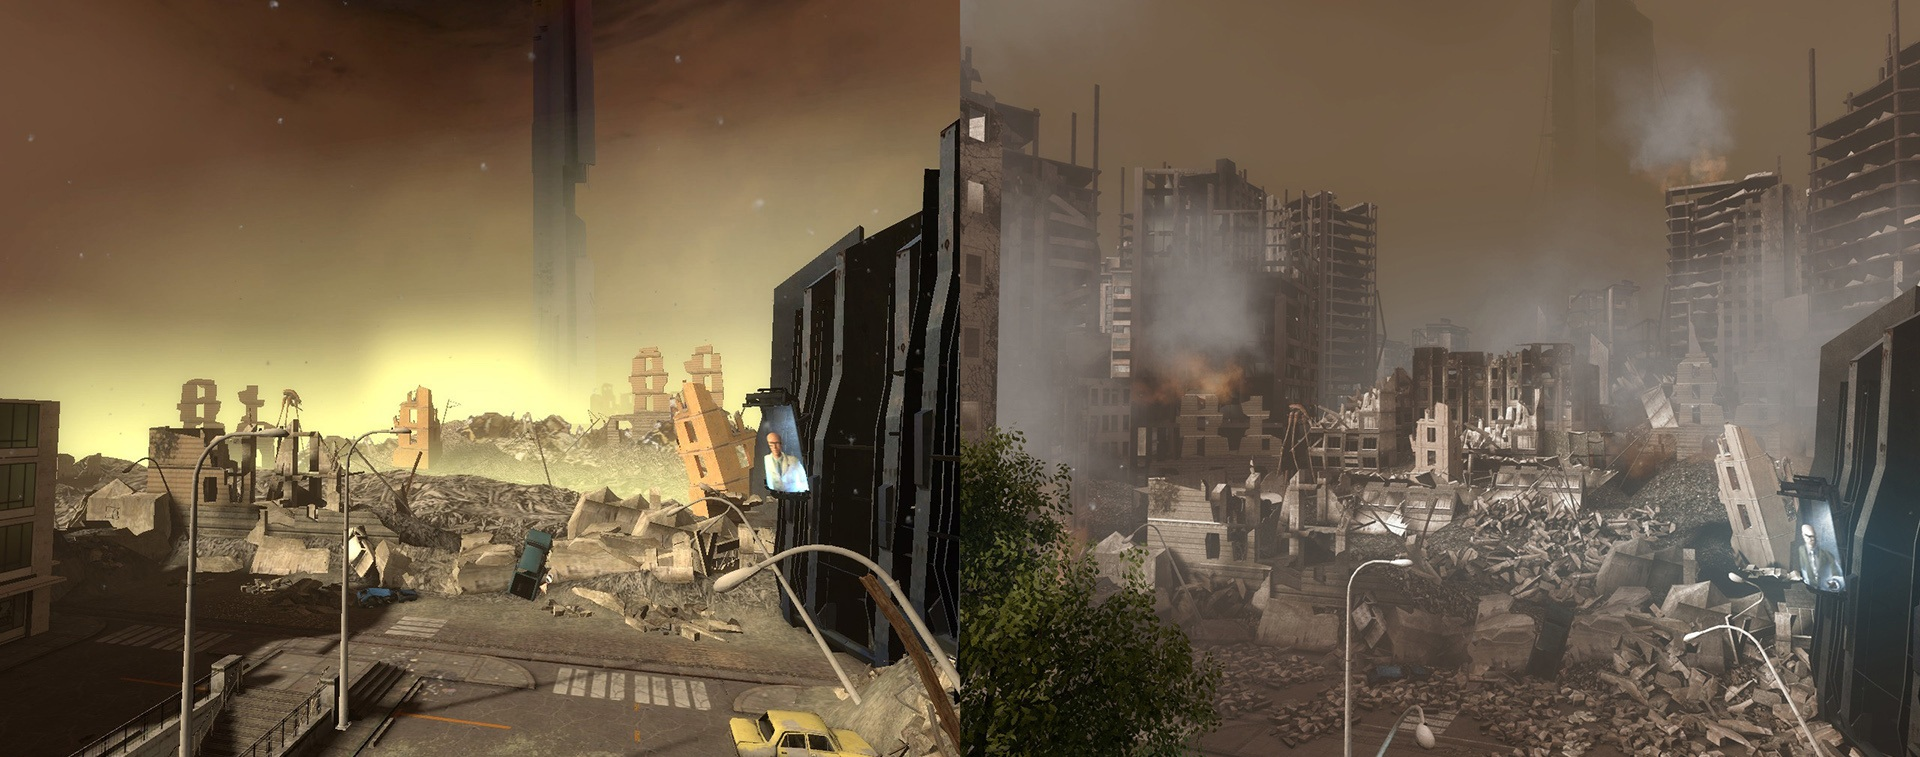 Half-Life 2 Cinematic Mod soups up the sparkle, adds graphical gloss